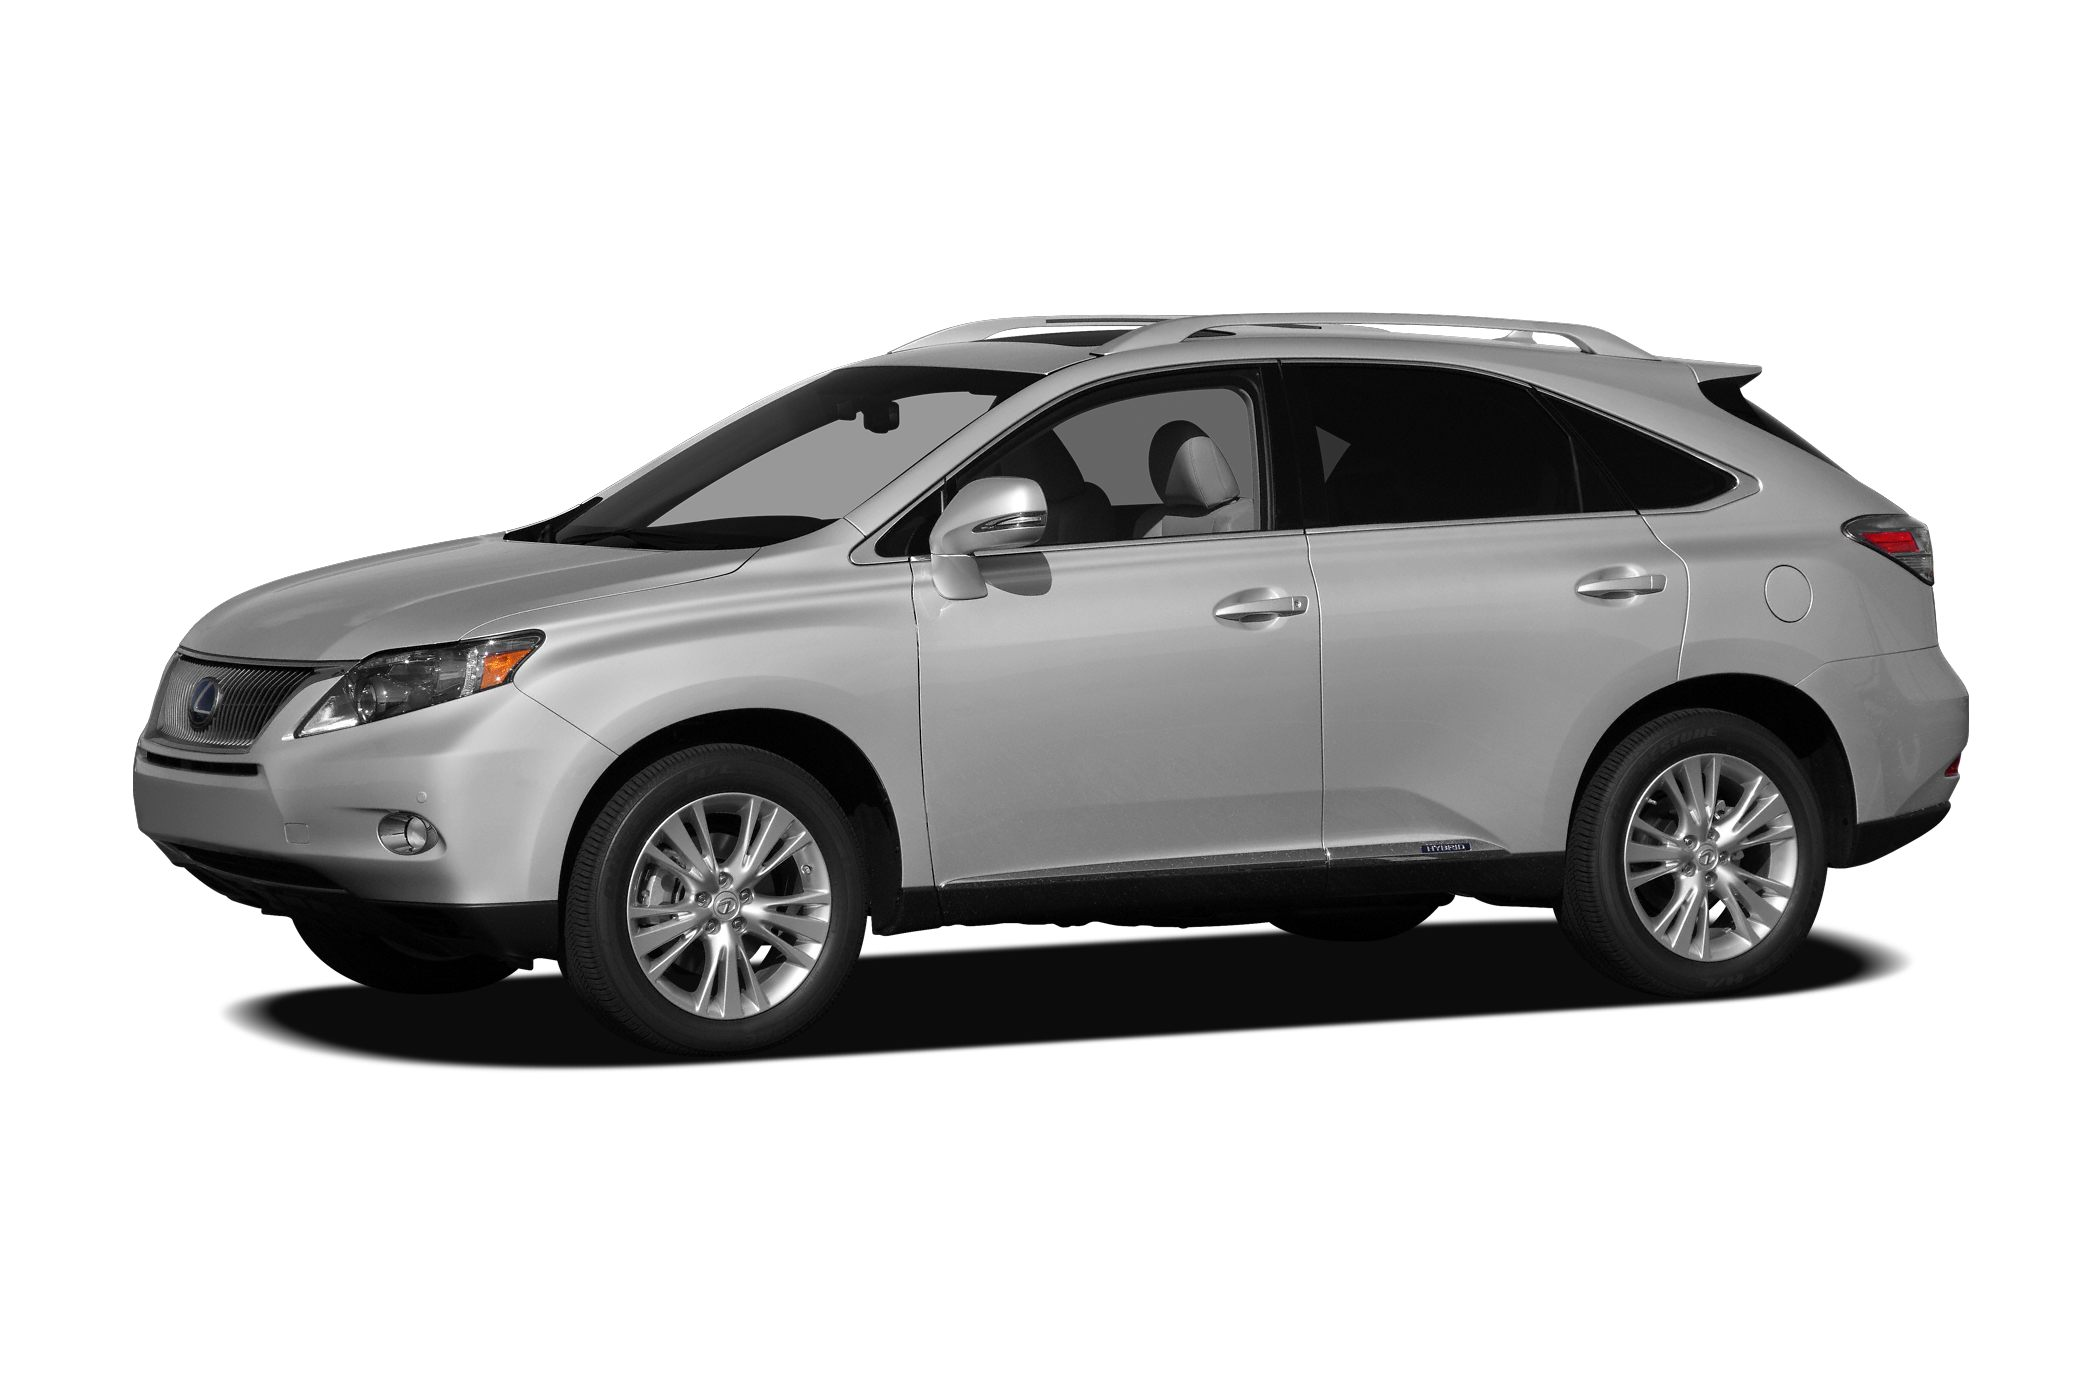 2011 Lexus RX 450h New Car Test Drive